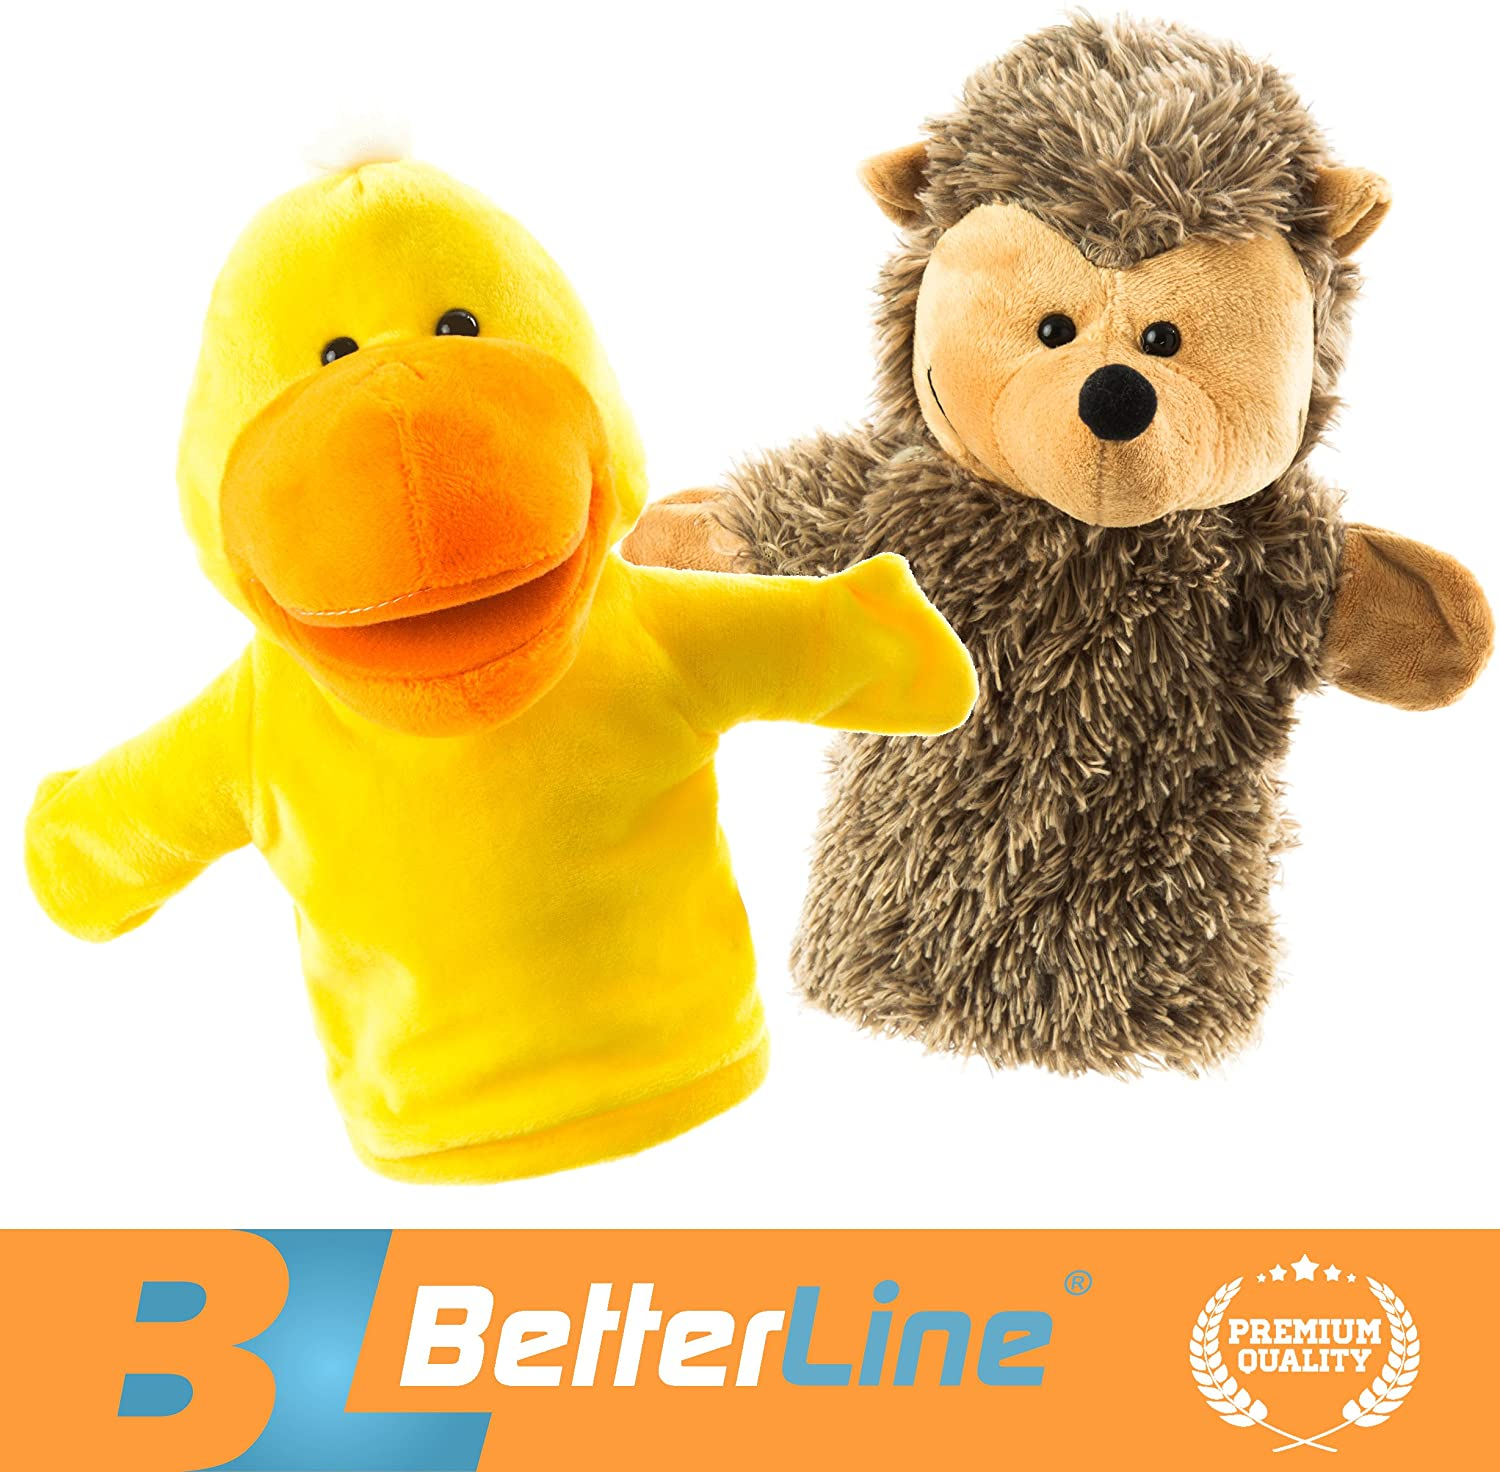 BETTERLINE Animal Hand Puppets Set of 2 Premium Quality, 9.5 Inches Soft Plush Hand Puppets for Kids- Perfect for Storytelling, Teaching, Preschool, Role-Play Toy Puppets (Duck and Hedgehog)